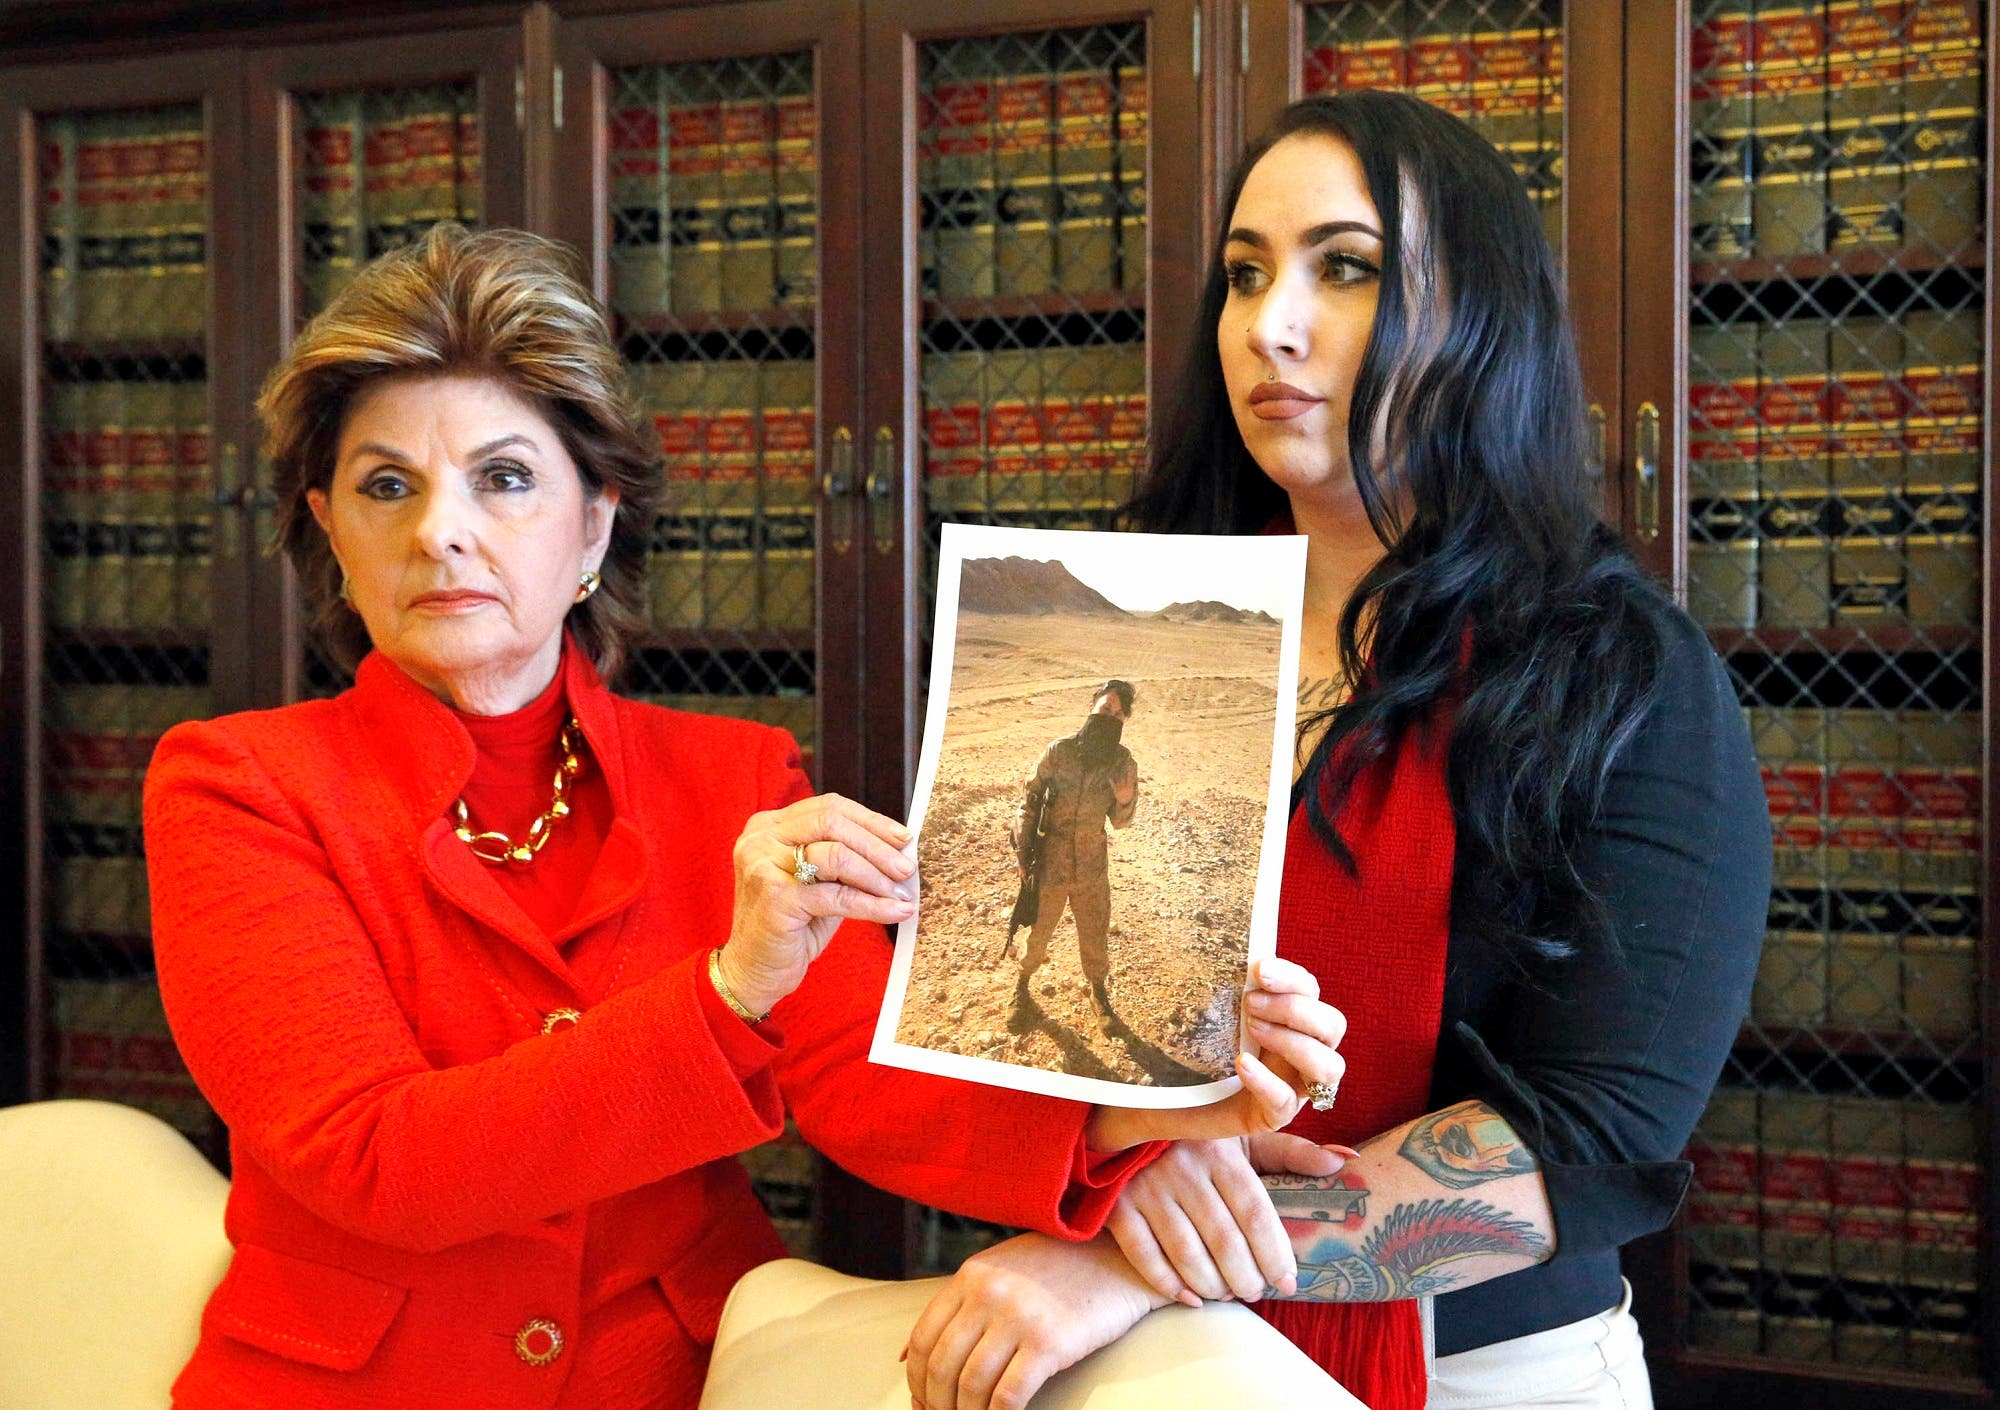 Former Marine Erika Butner, right, and attorney Gloria Allred hold photos of Butner in uniform, as she and another active-duty female Marine said photographs of them were secretly posted online without their consent. (AP)